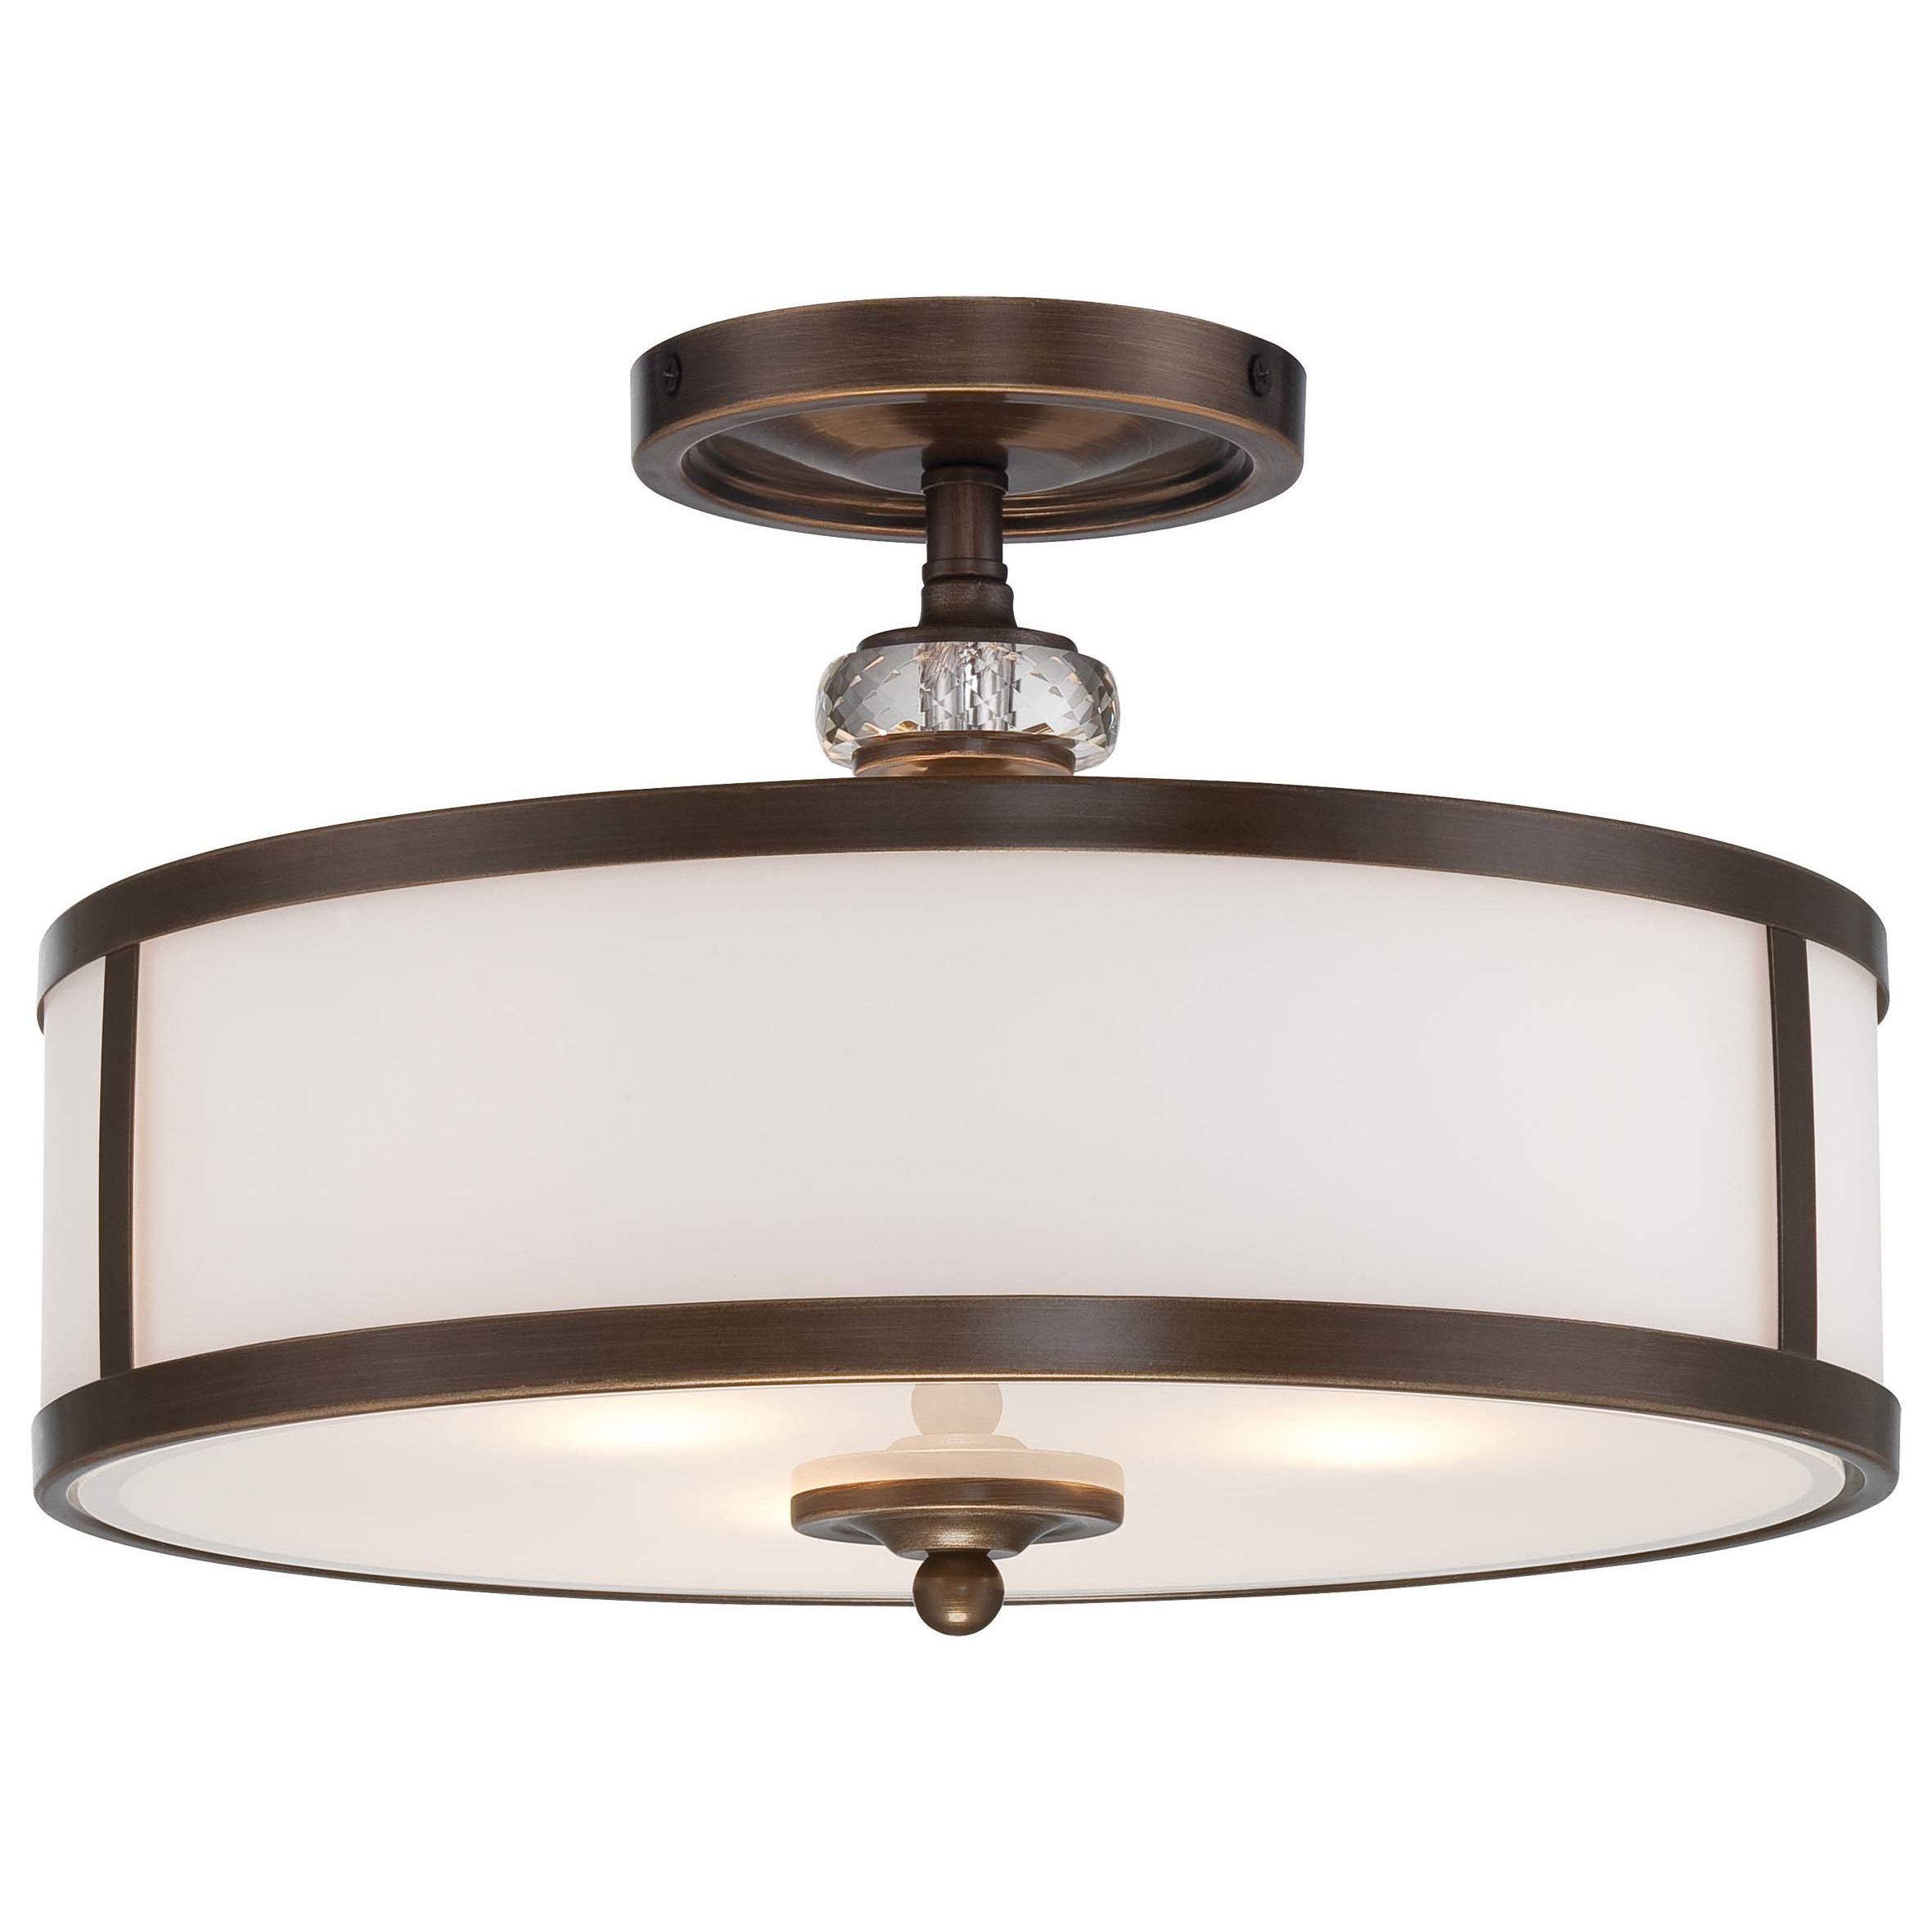 Best ideas about Minka Lavery Lighting . Save or Pin Minka Lavery Thorndale 3 Light Semi Flush Mount & Reviews Now.